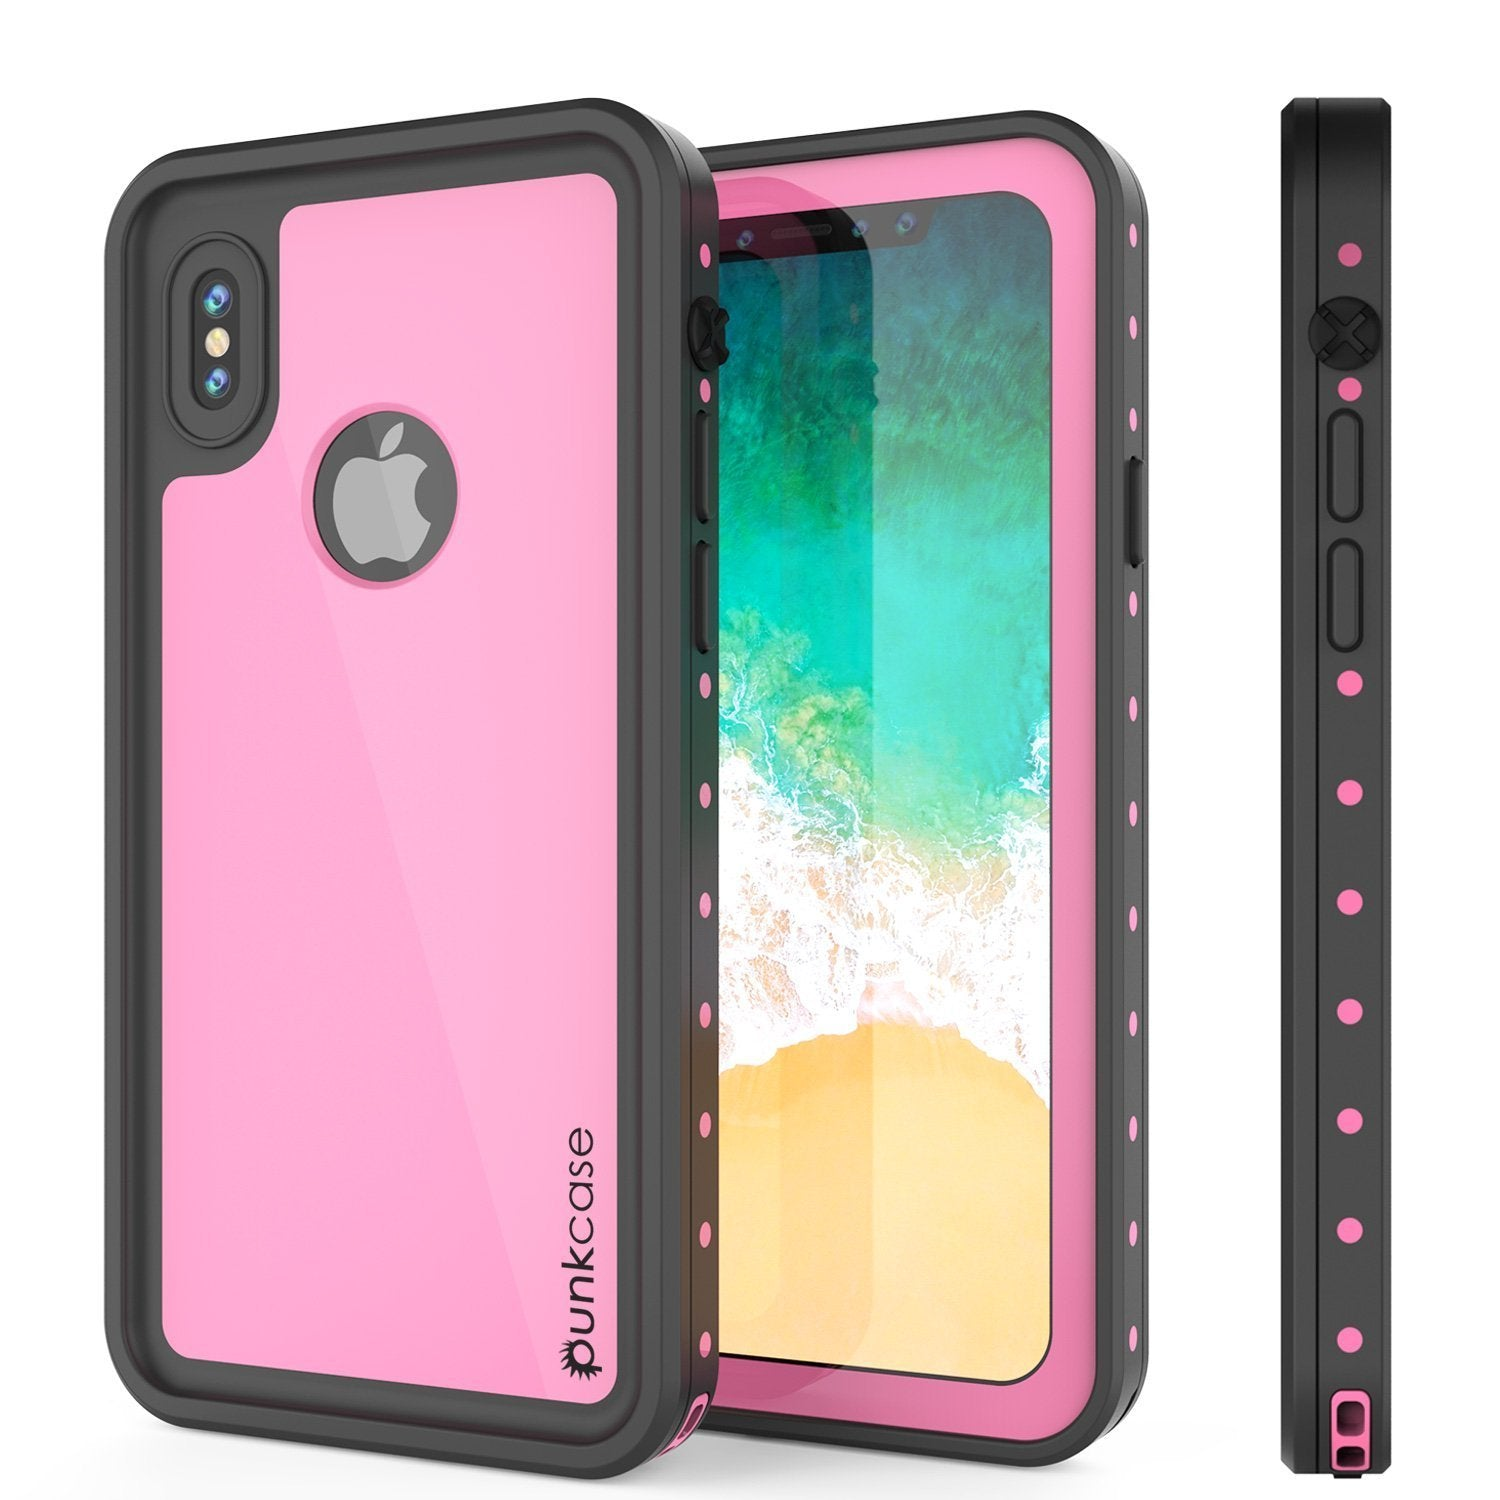 iPhone XR Waterproof IP68 Case, Punkcase [Pink] [StudStar Series] [Slim Fit] [Dirtproof]